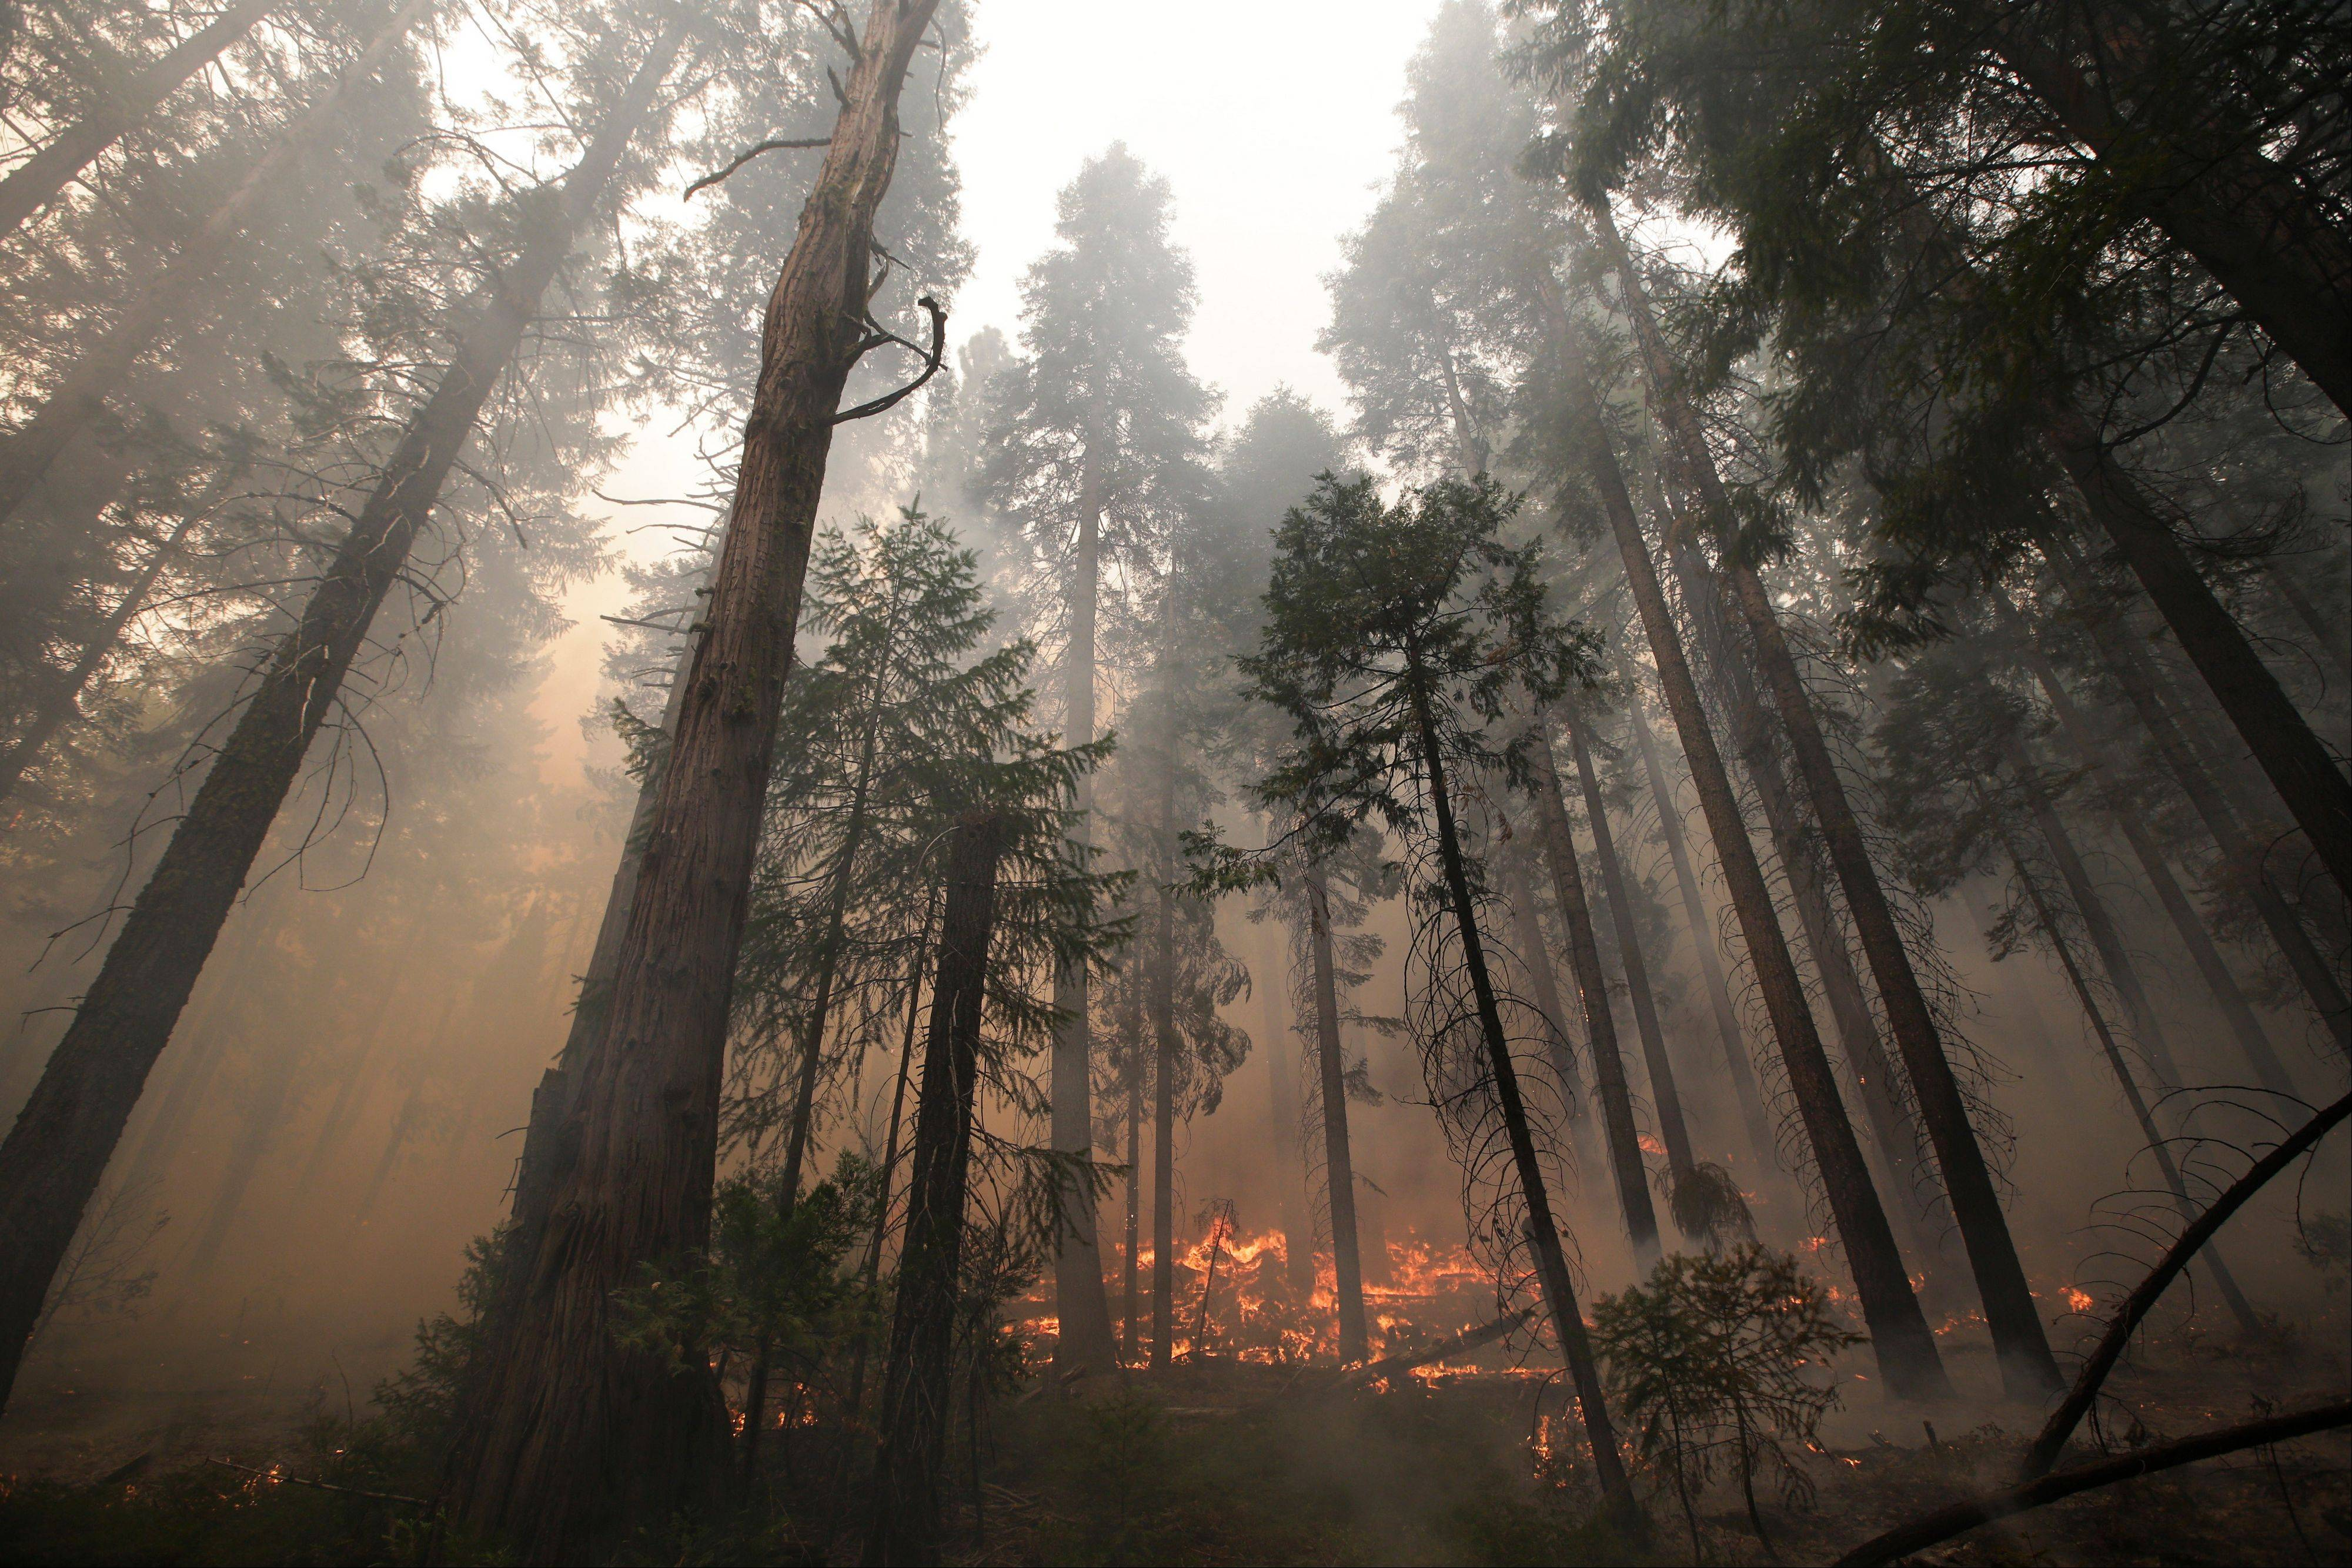 The Rim Fire burns through trees near Yosemite National Park, Calif., on Tuesday, Aug. 27, 2013.